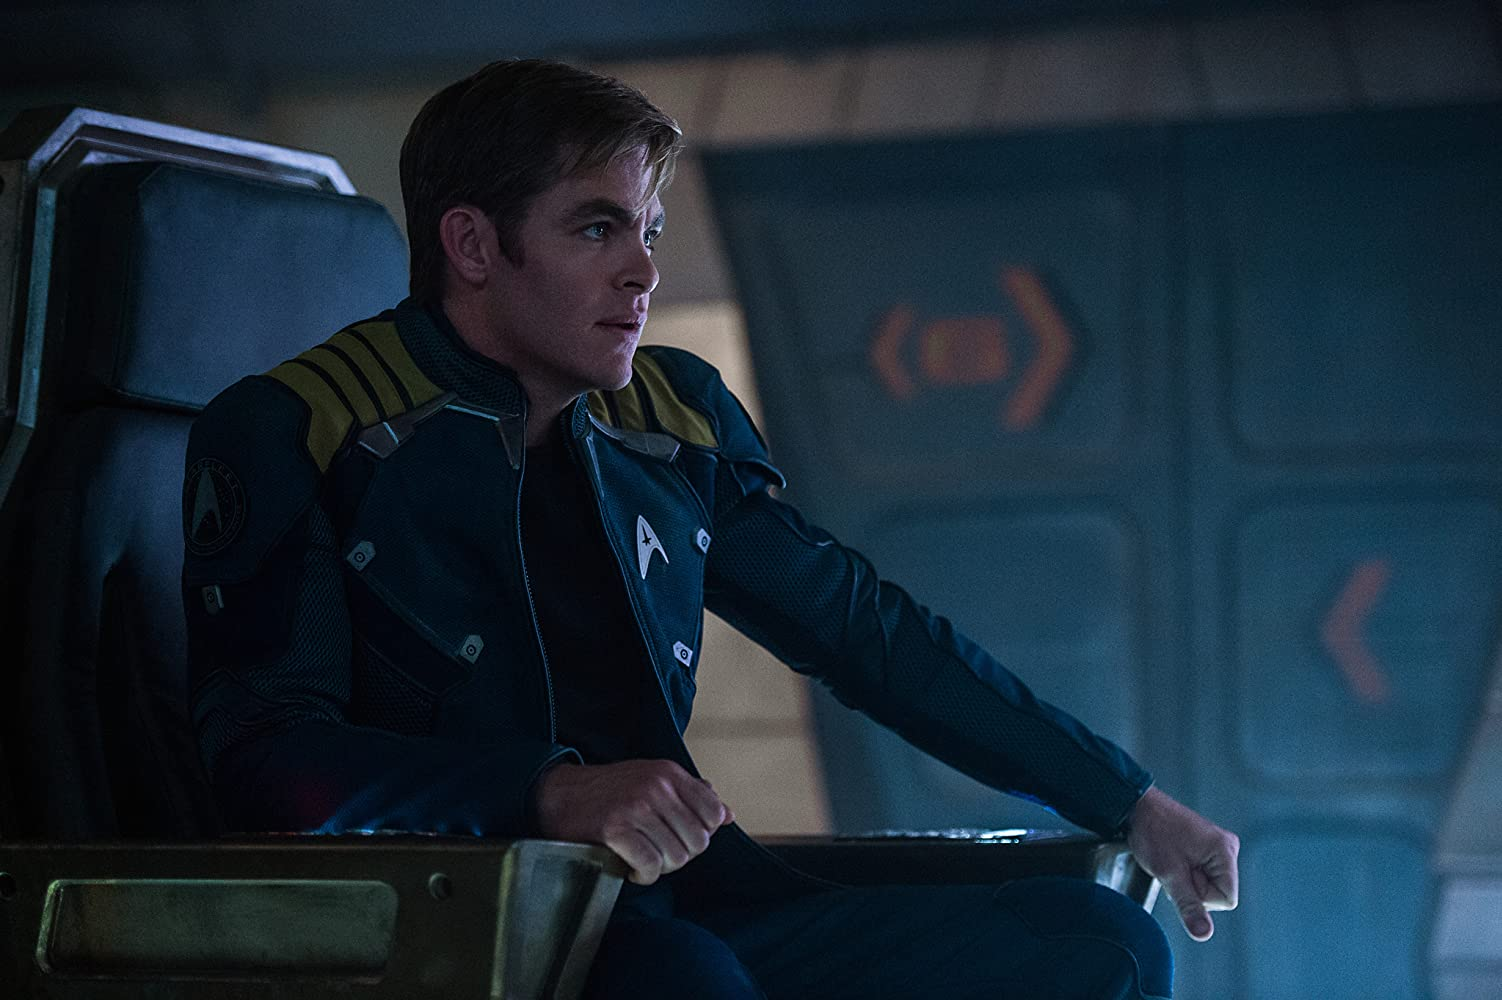 Chris Pine in Star Trek: Beyond (2016)